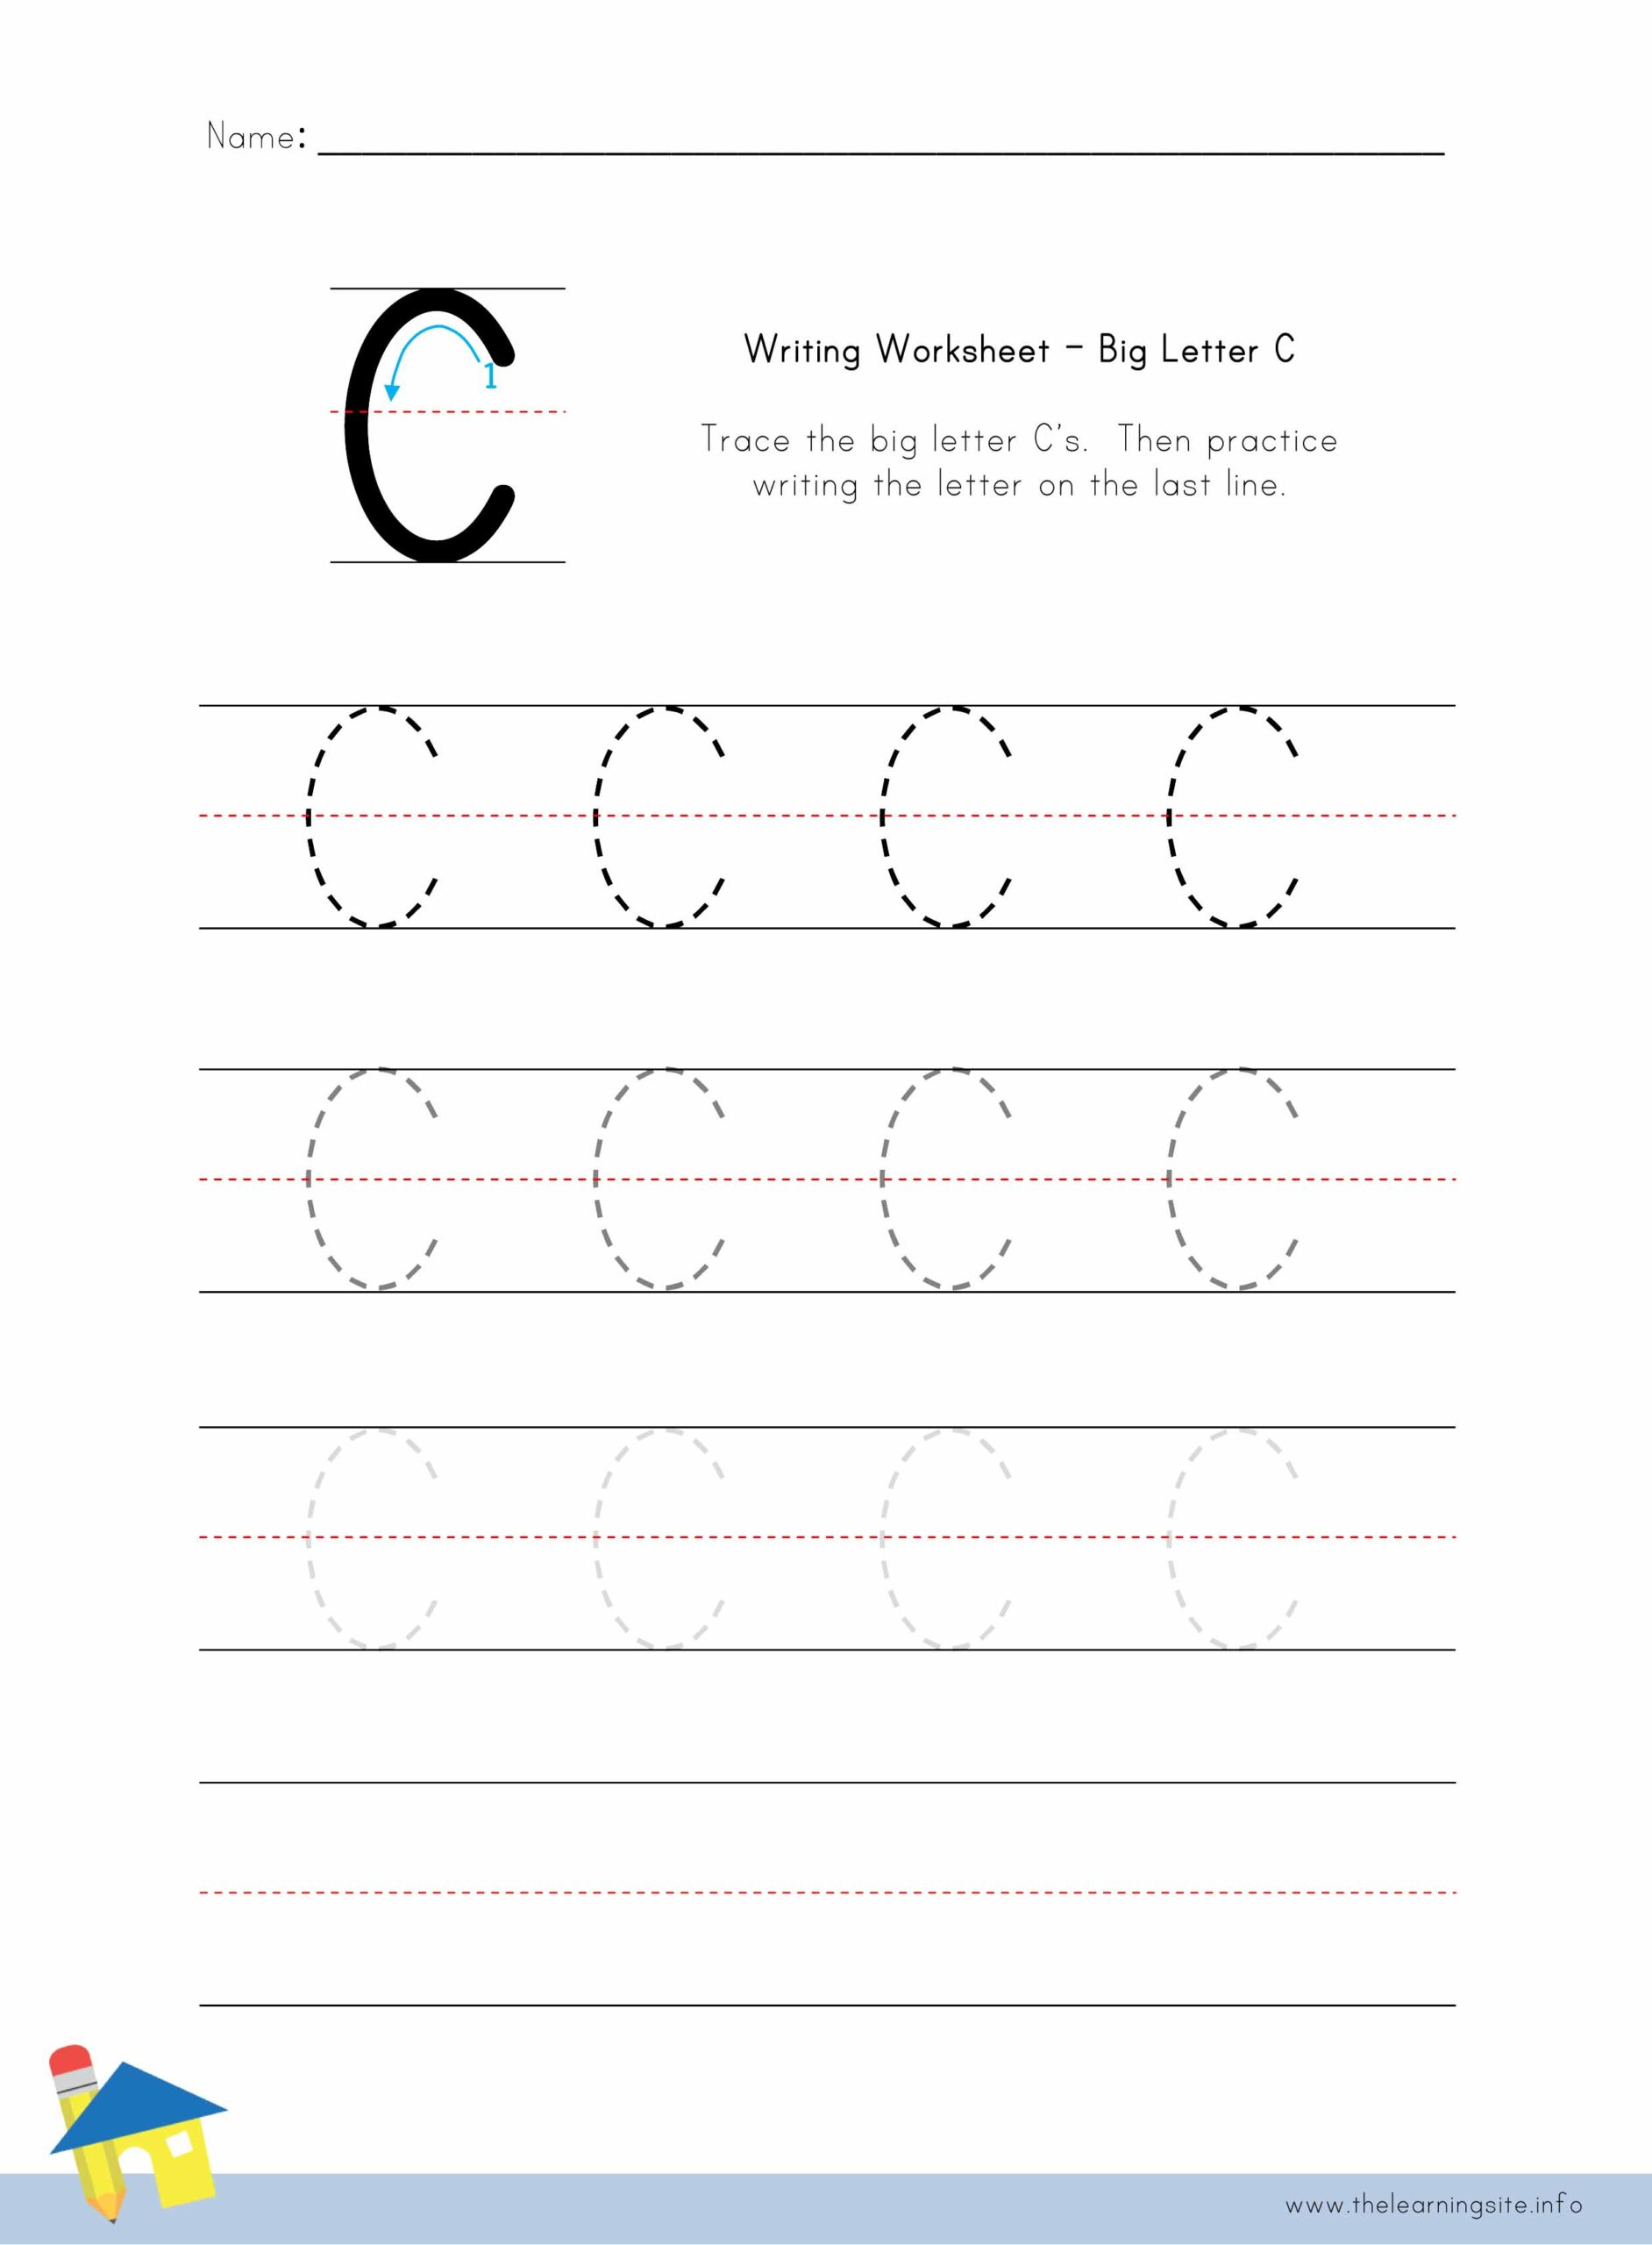 Big Letter C Writing Worksheet The Learning Site